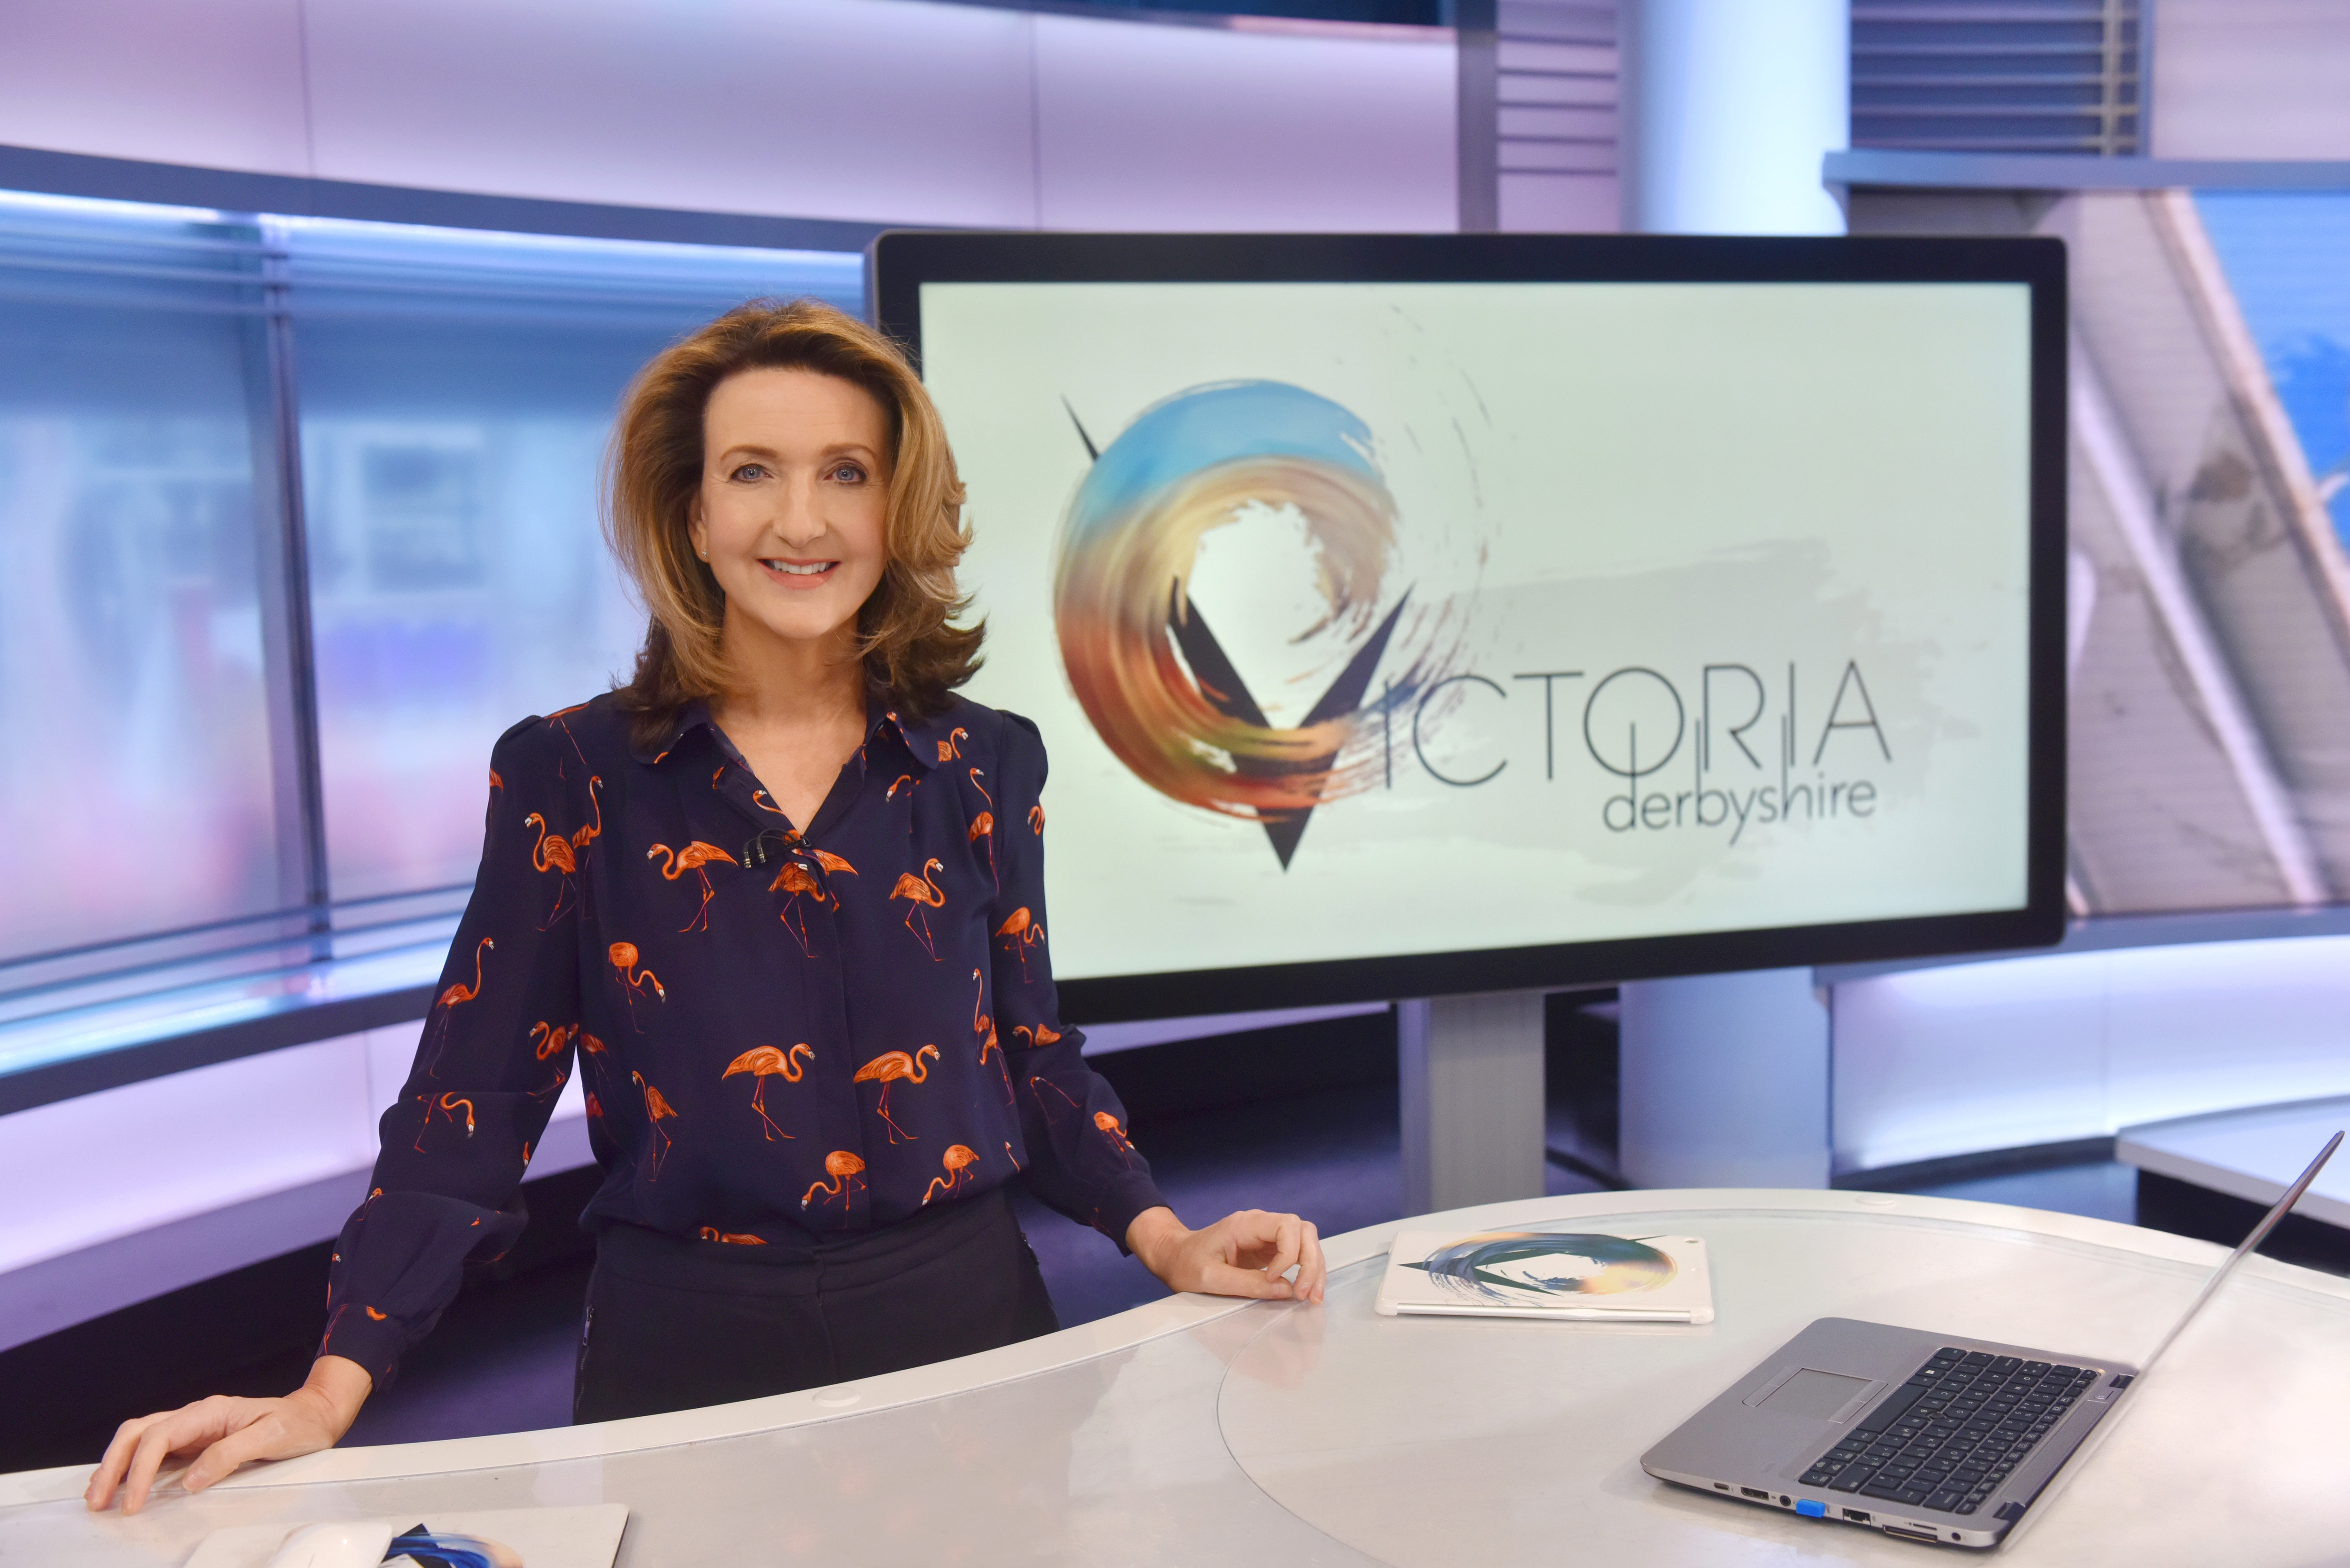 Bbc Promises New Role For Absolutely Devastated Victoria Derbyshire After Show Axed